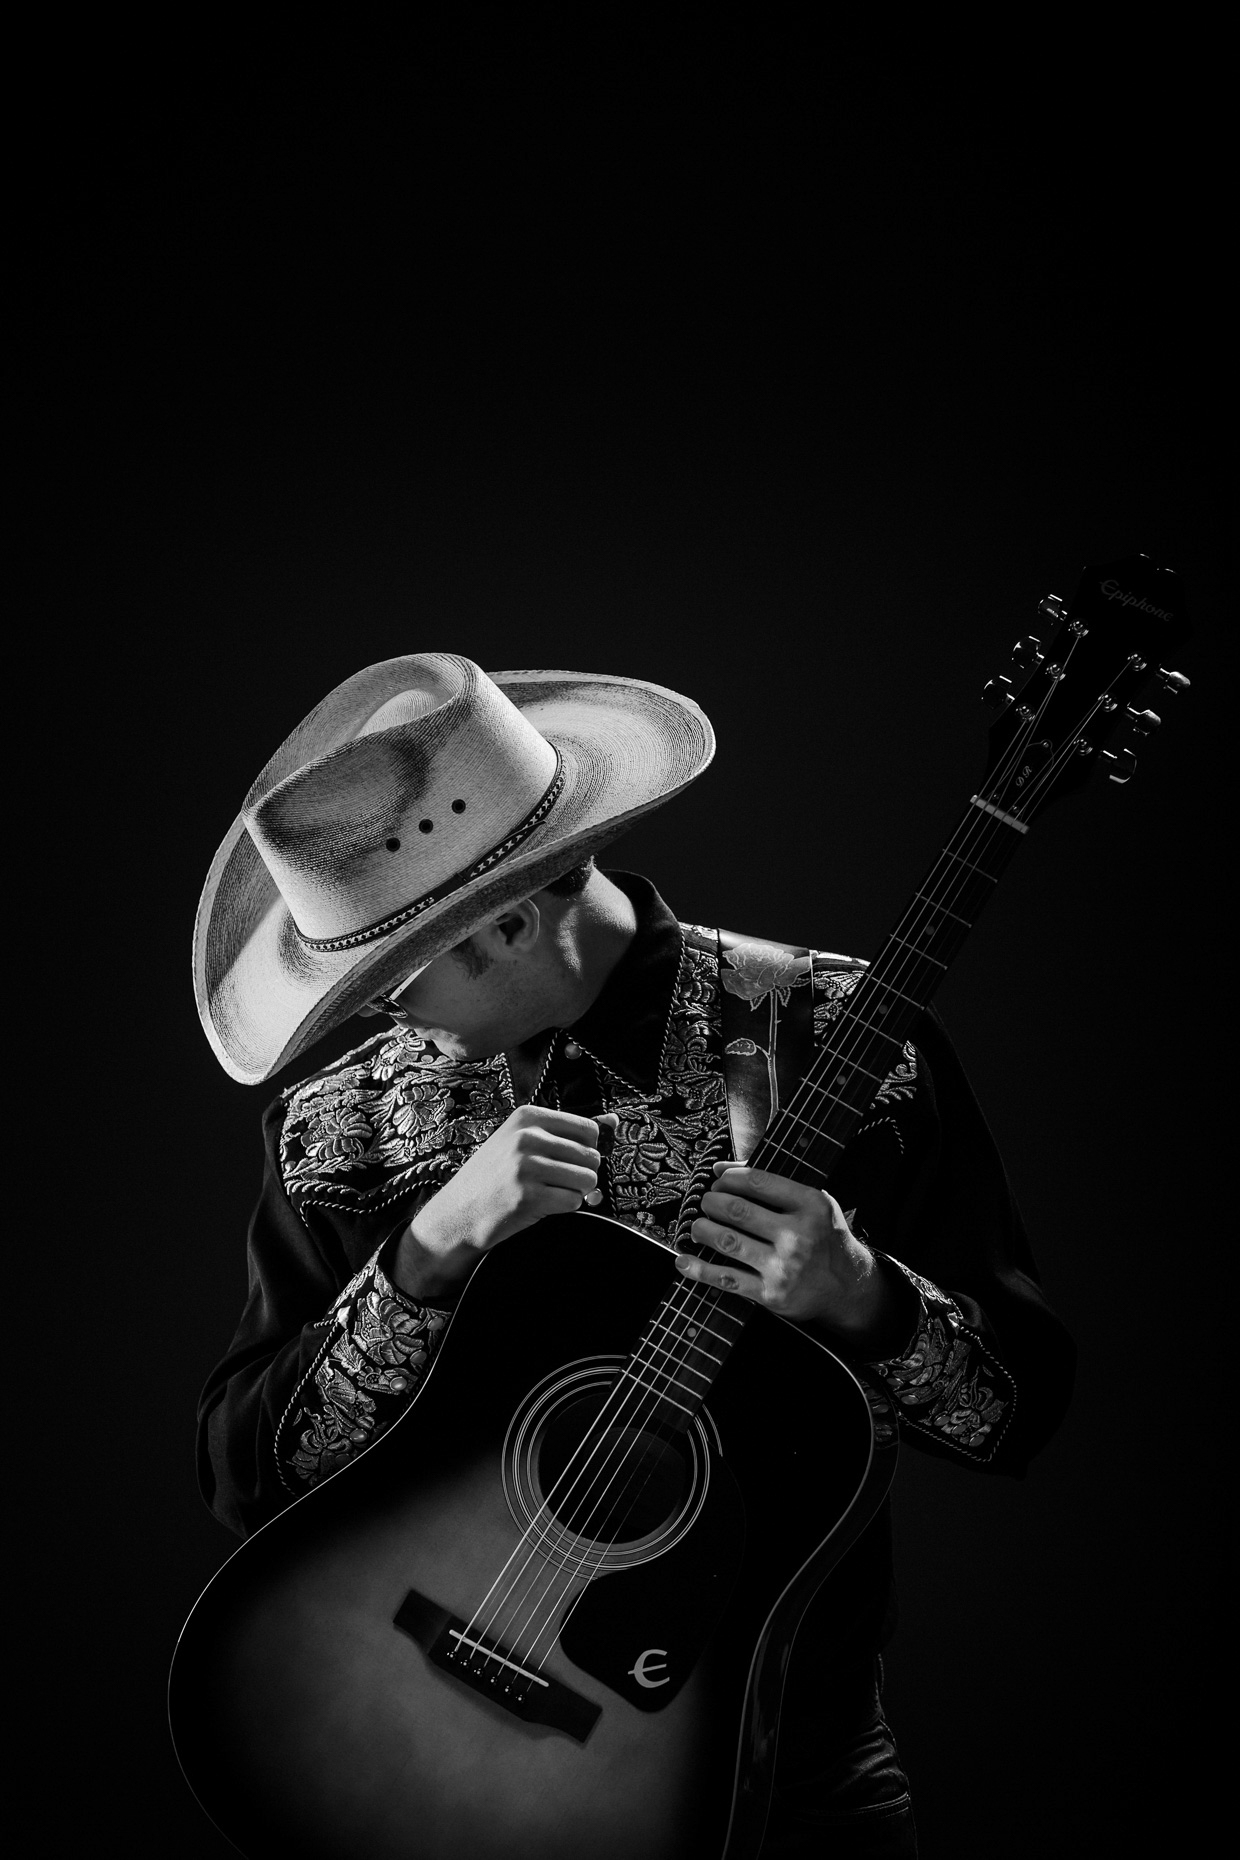 Musical artist Chase Padgett in a pensive pose wearing a cowboy hat and hoding his guitar for poster art of his one man show,  Nashville Hurricane by Andy Batt